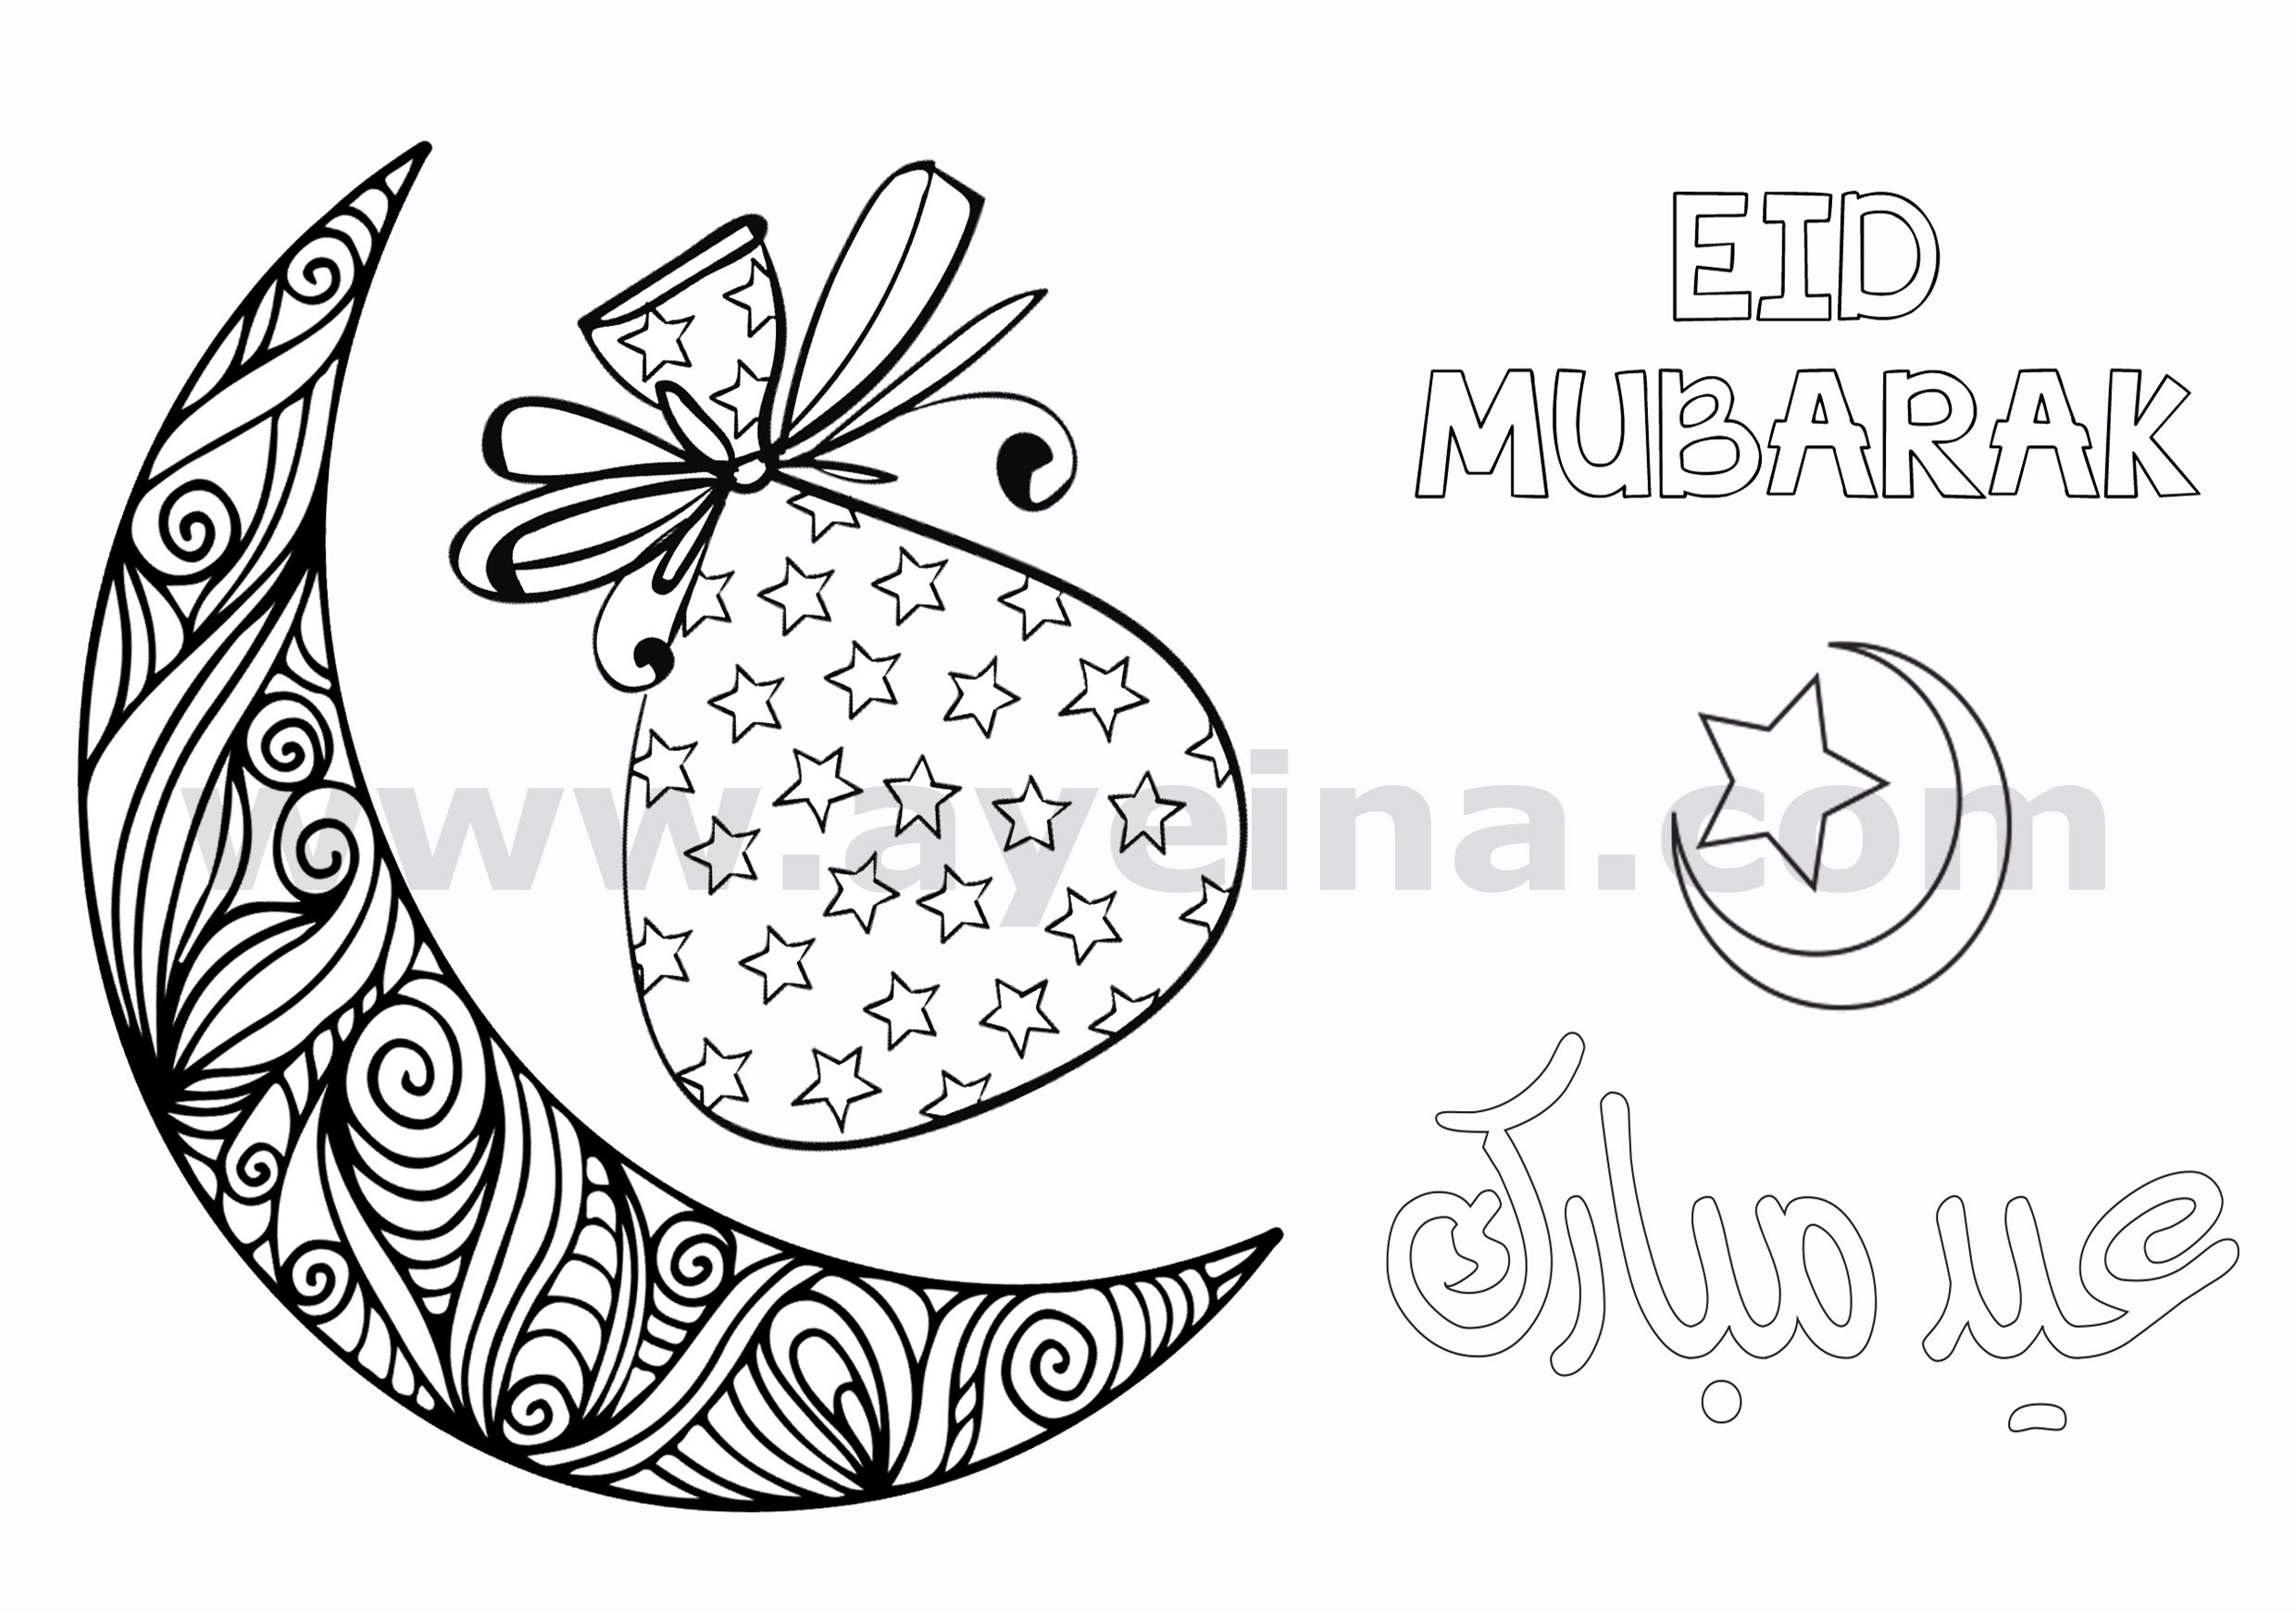 Eid Mubarak Free Coloring Card For Kids Eid Cards Printable Cards Color Card